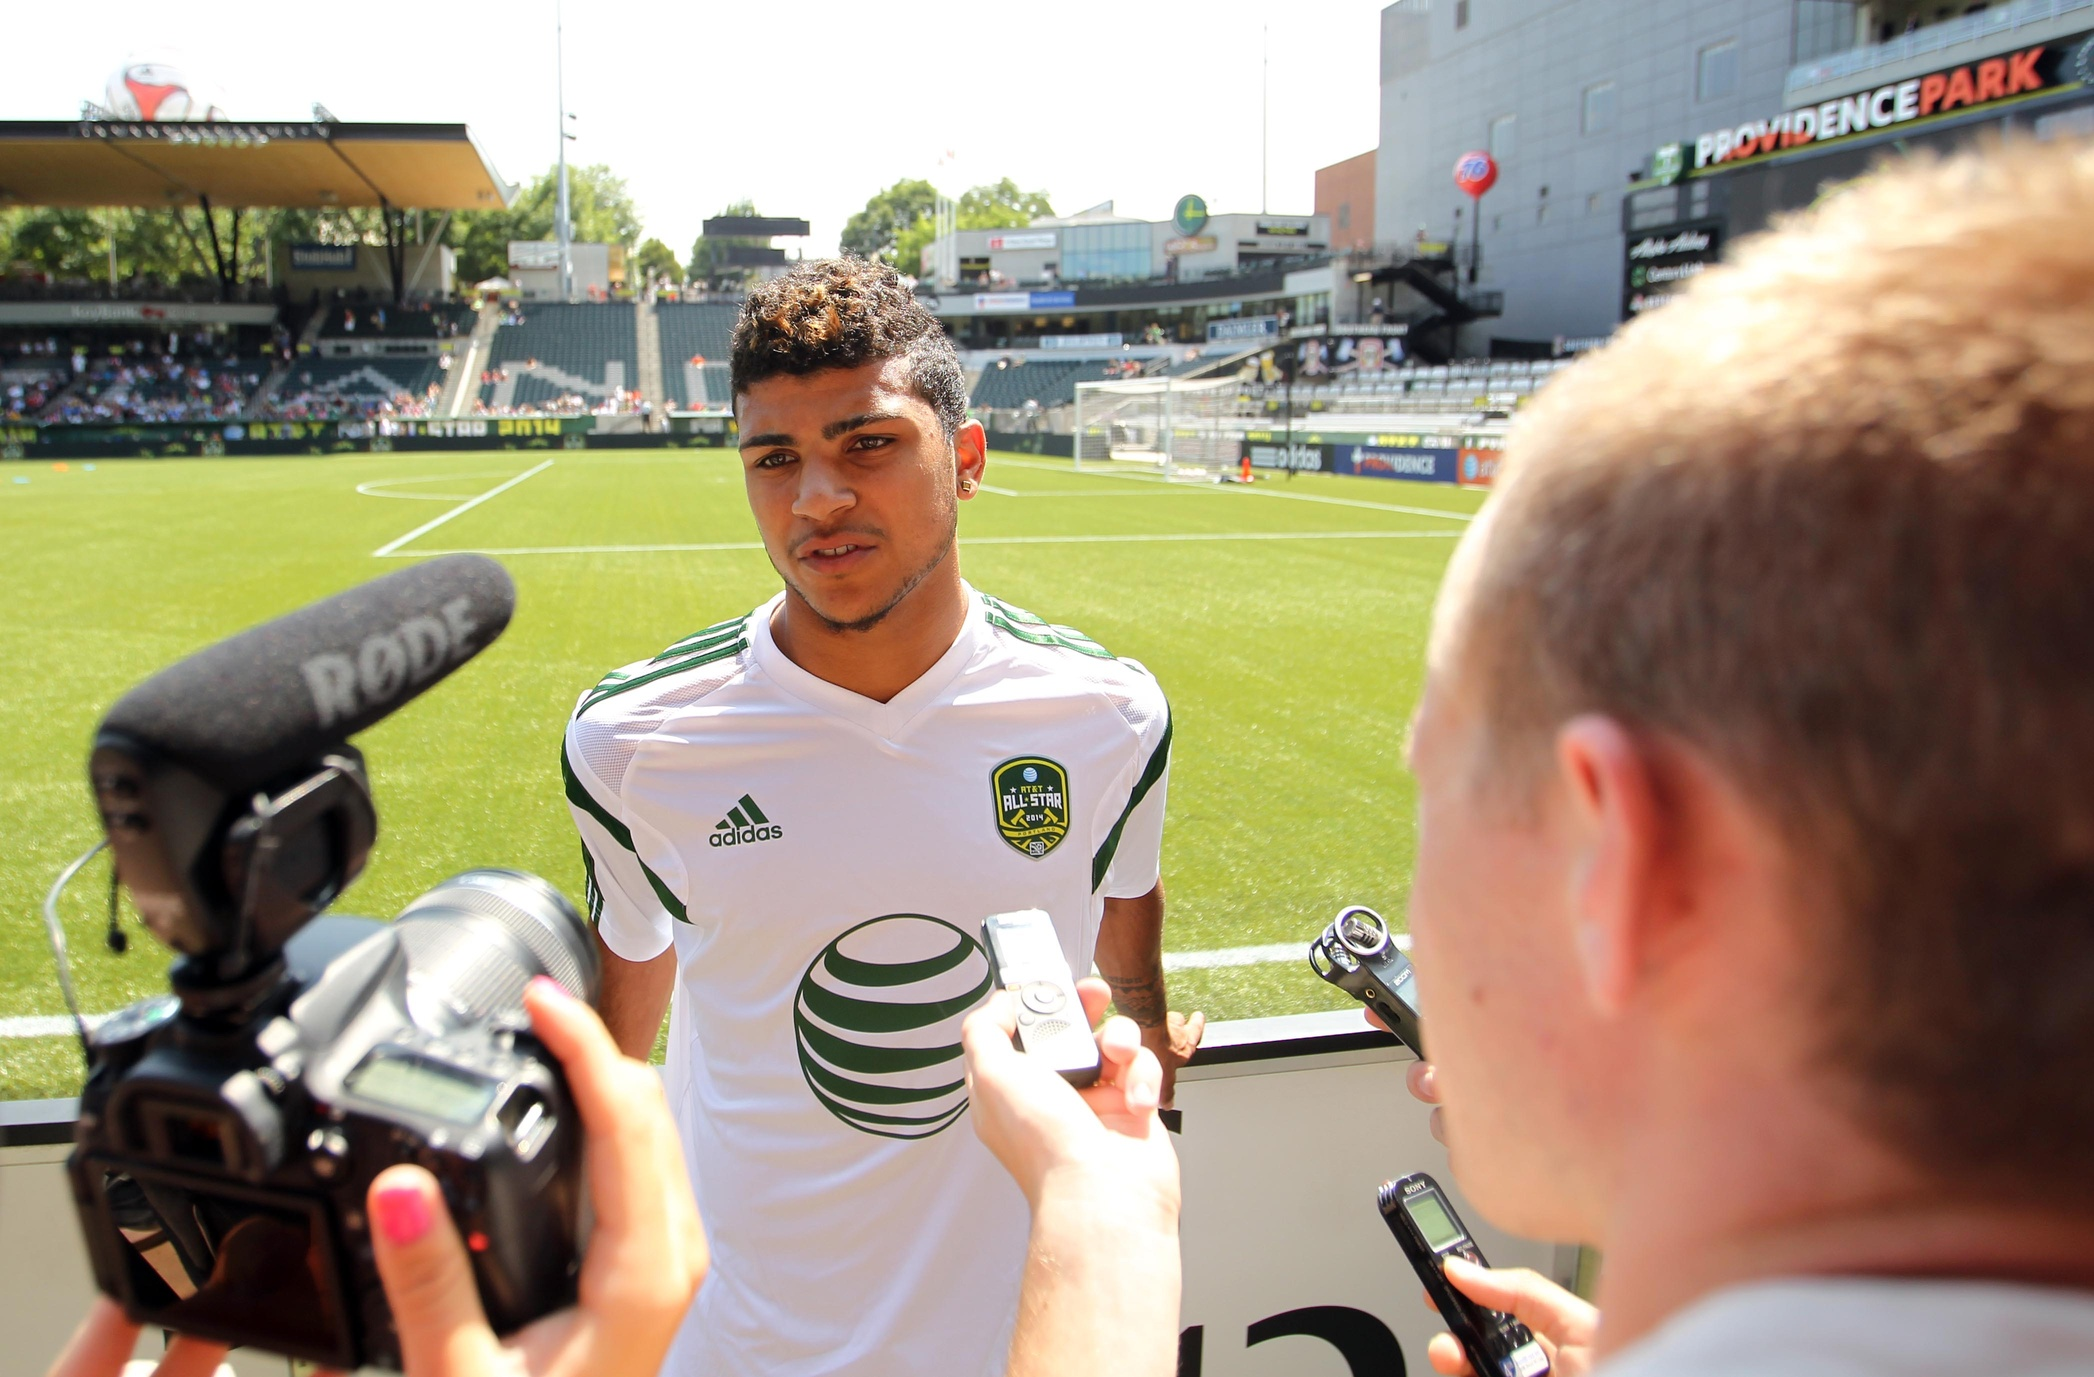 Spurs Leading Chase to Sign DeAndre Yedlin From Seattle Sounders, Says Report